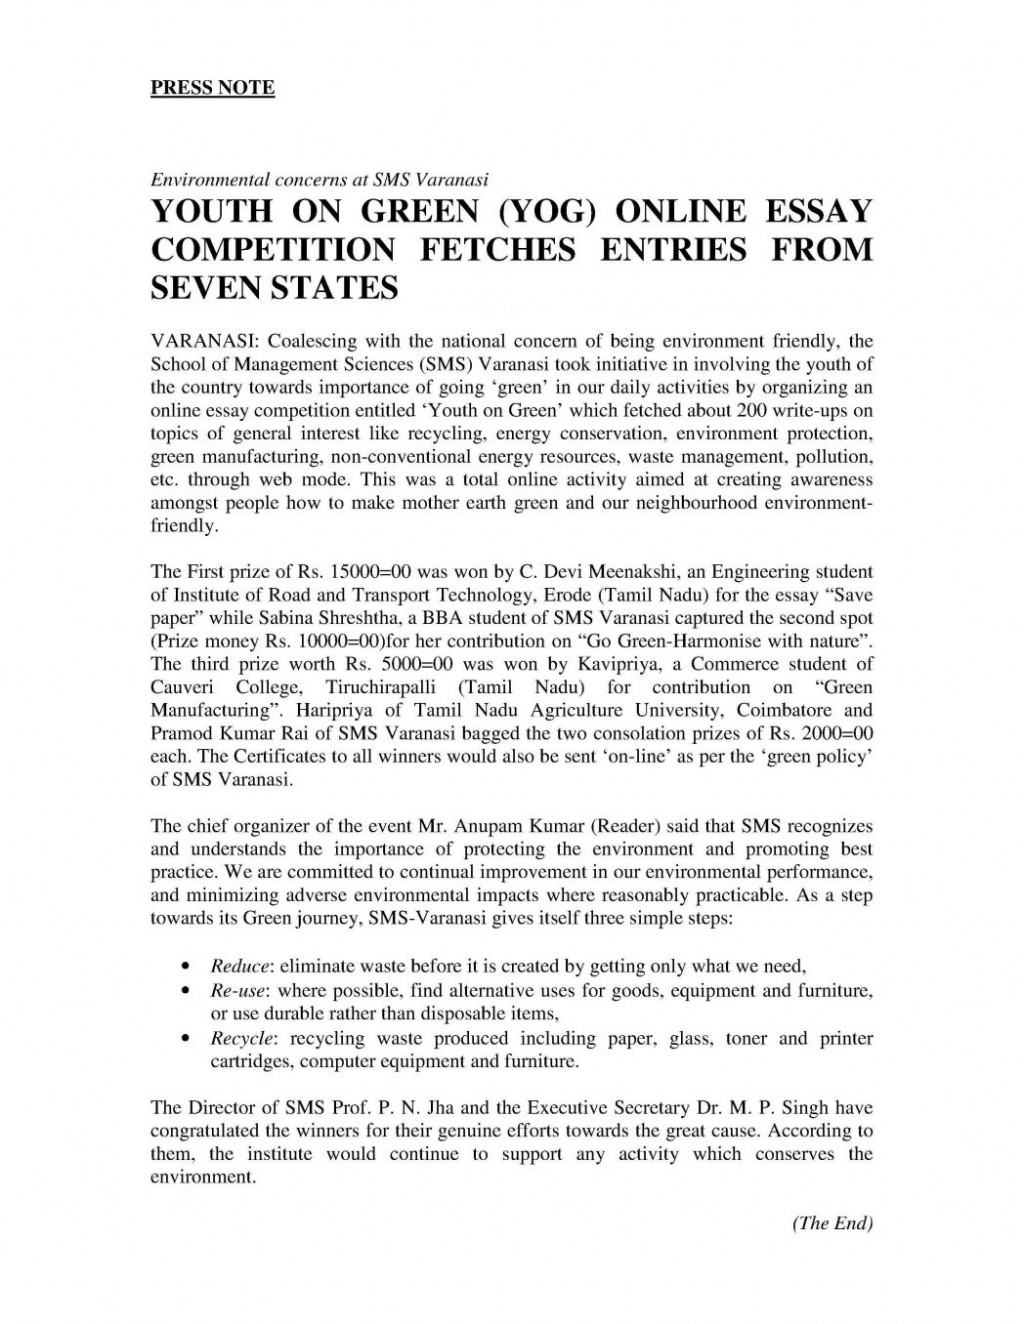 020 Best Essays For College Essay On Good Habits How Tot Application Online Yog Press Re About Yourself Examples Your Background Failure Prompt Off Hook 1048x1356 Example Amazing To Start An Bad With A Question Ways Definition Large